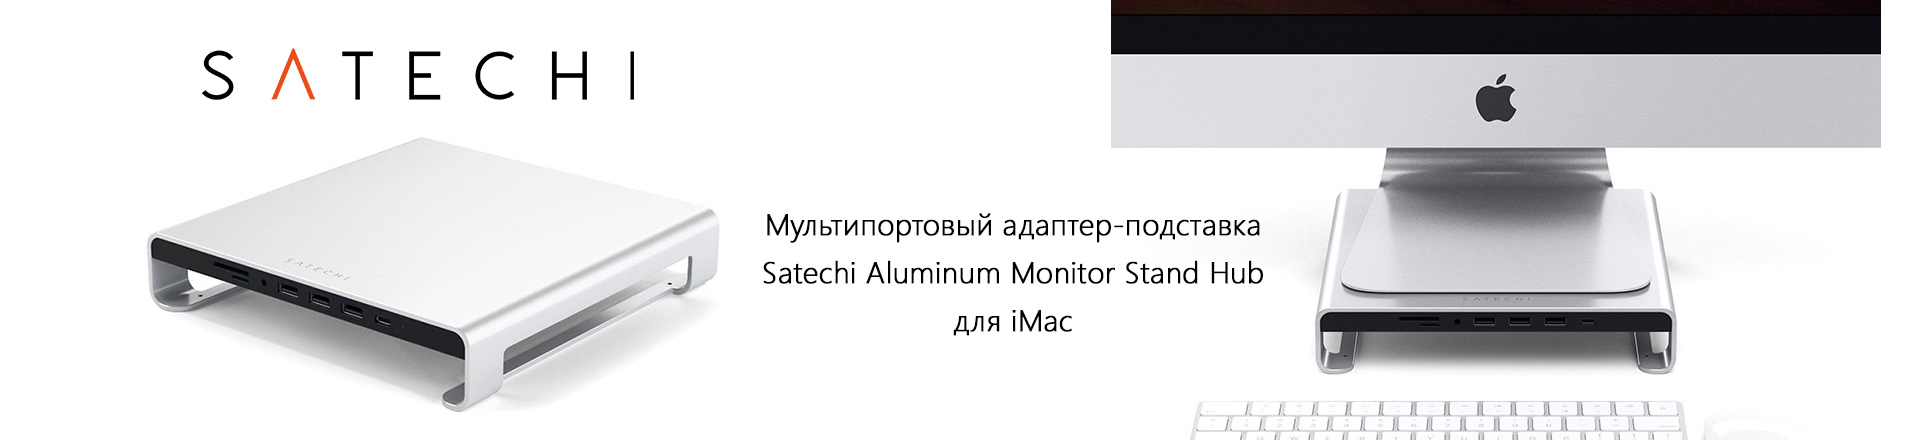 Satechi Aluminum Monitor Stand Hub Silver for iMac s v2